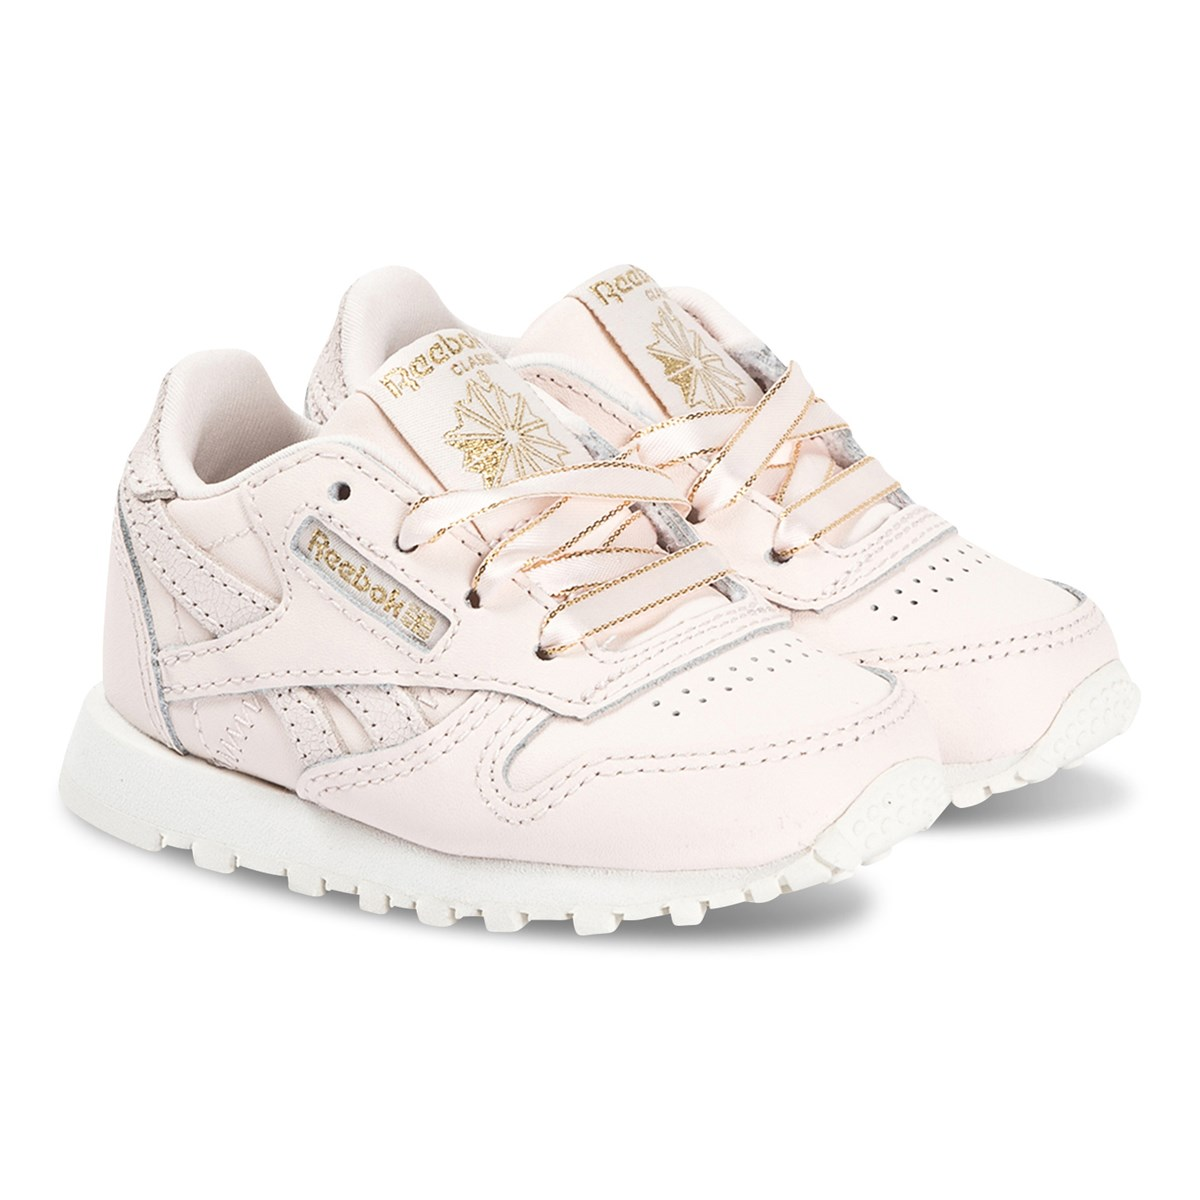 Infant Sneakers Reebok Classic Leather Infant Sneakers Pale Pink And Gold Babyshop